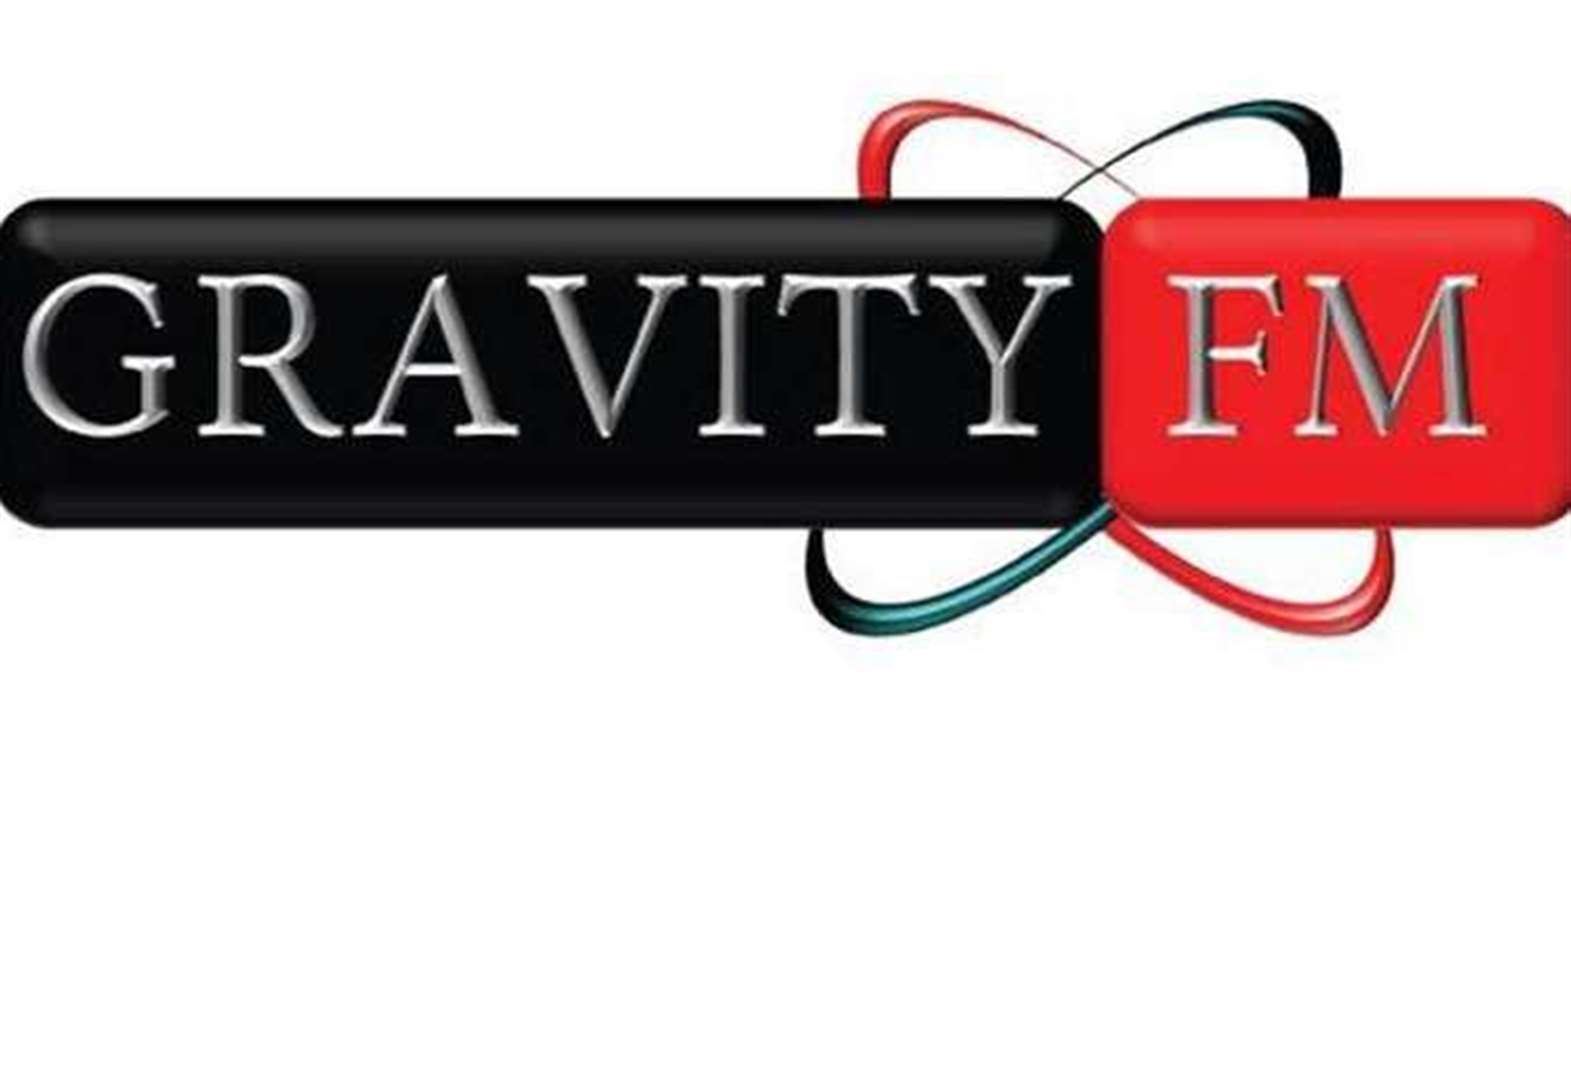 Radio host 'Pugsey' sacked by Gravity FM